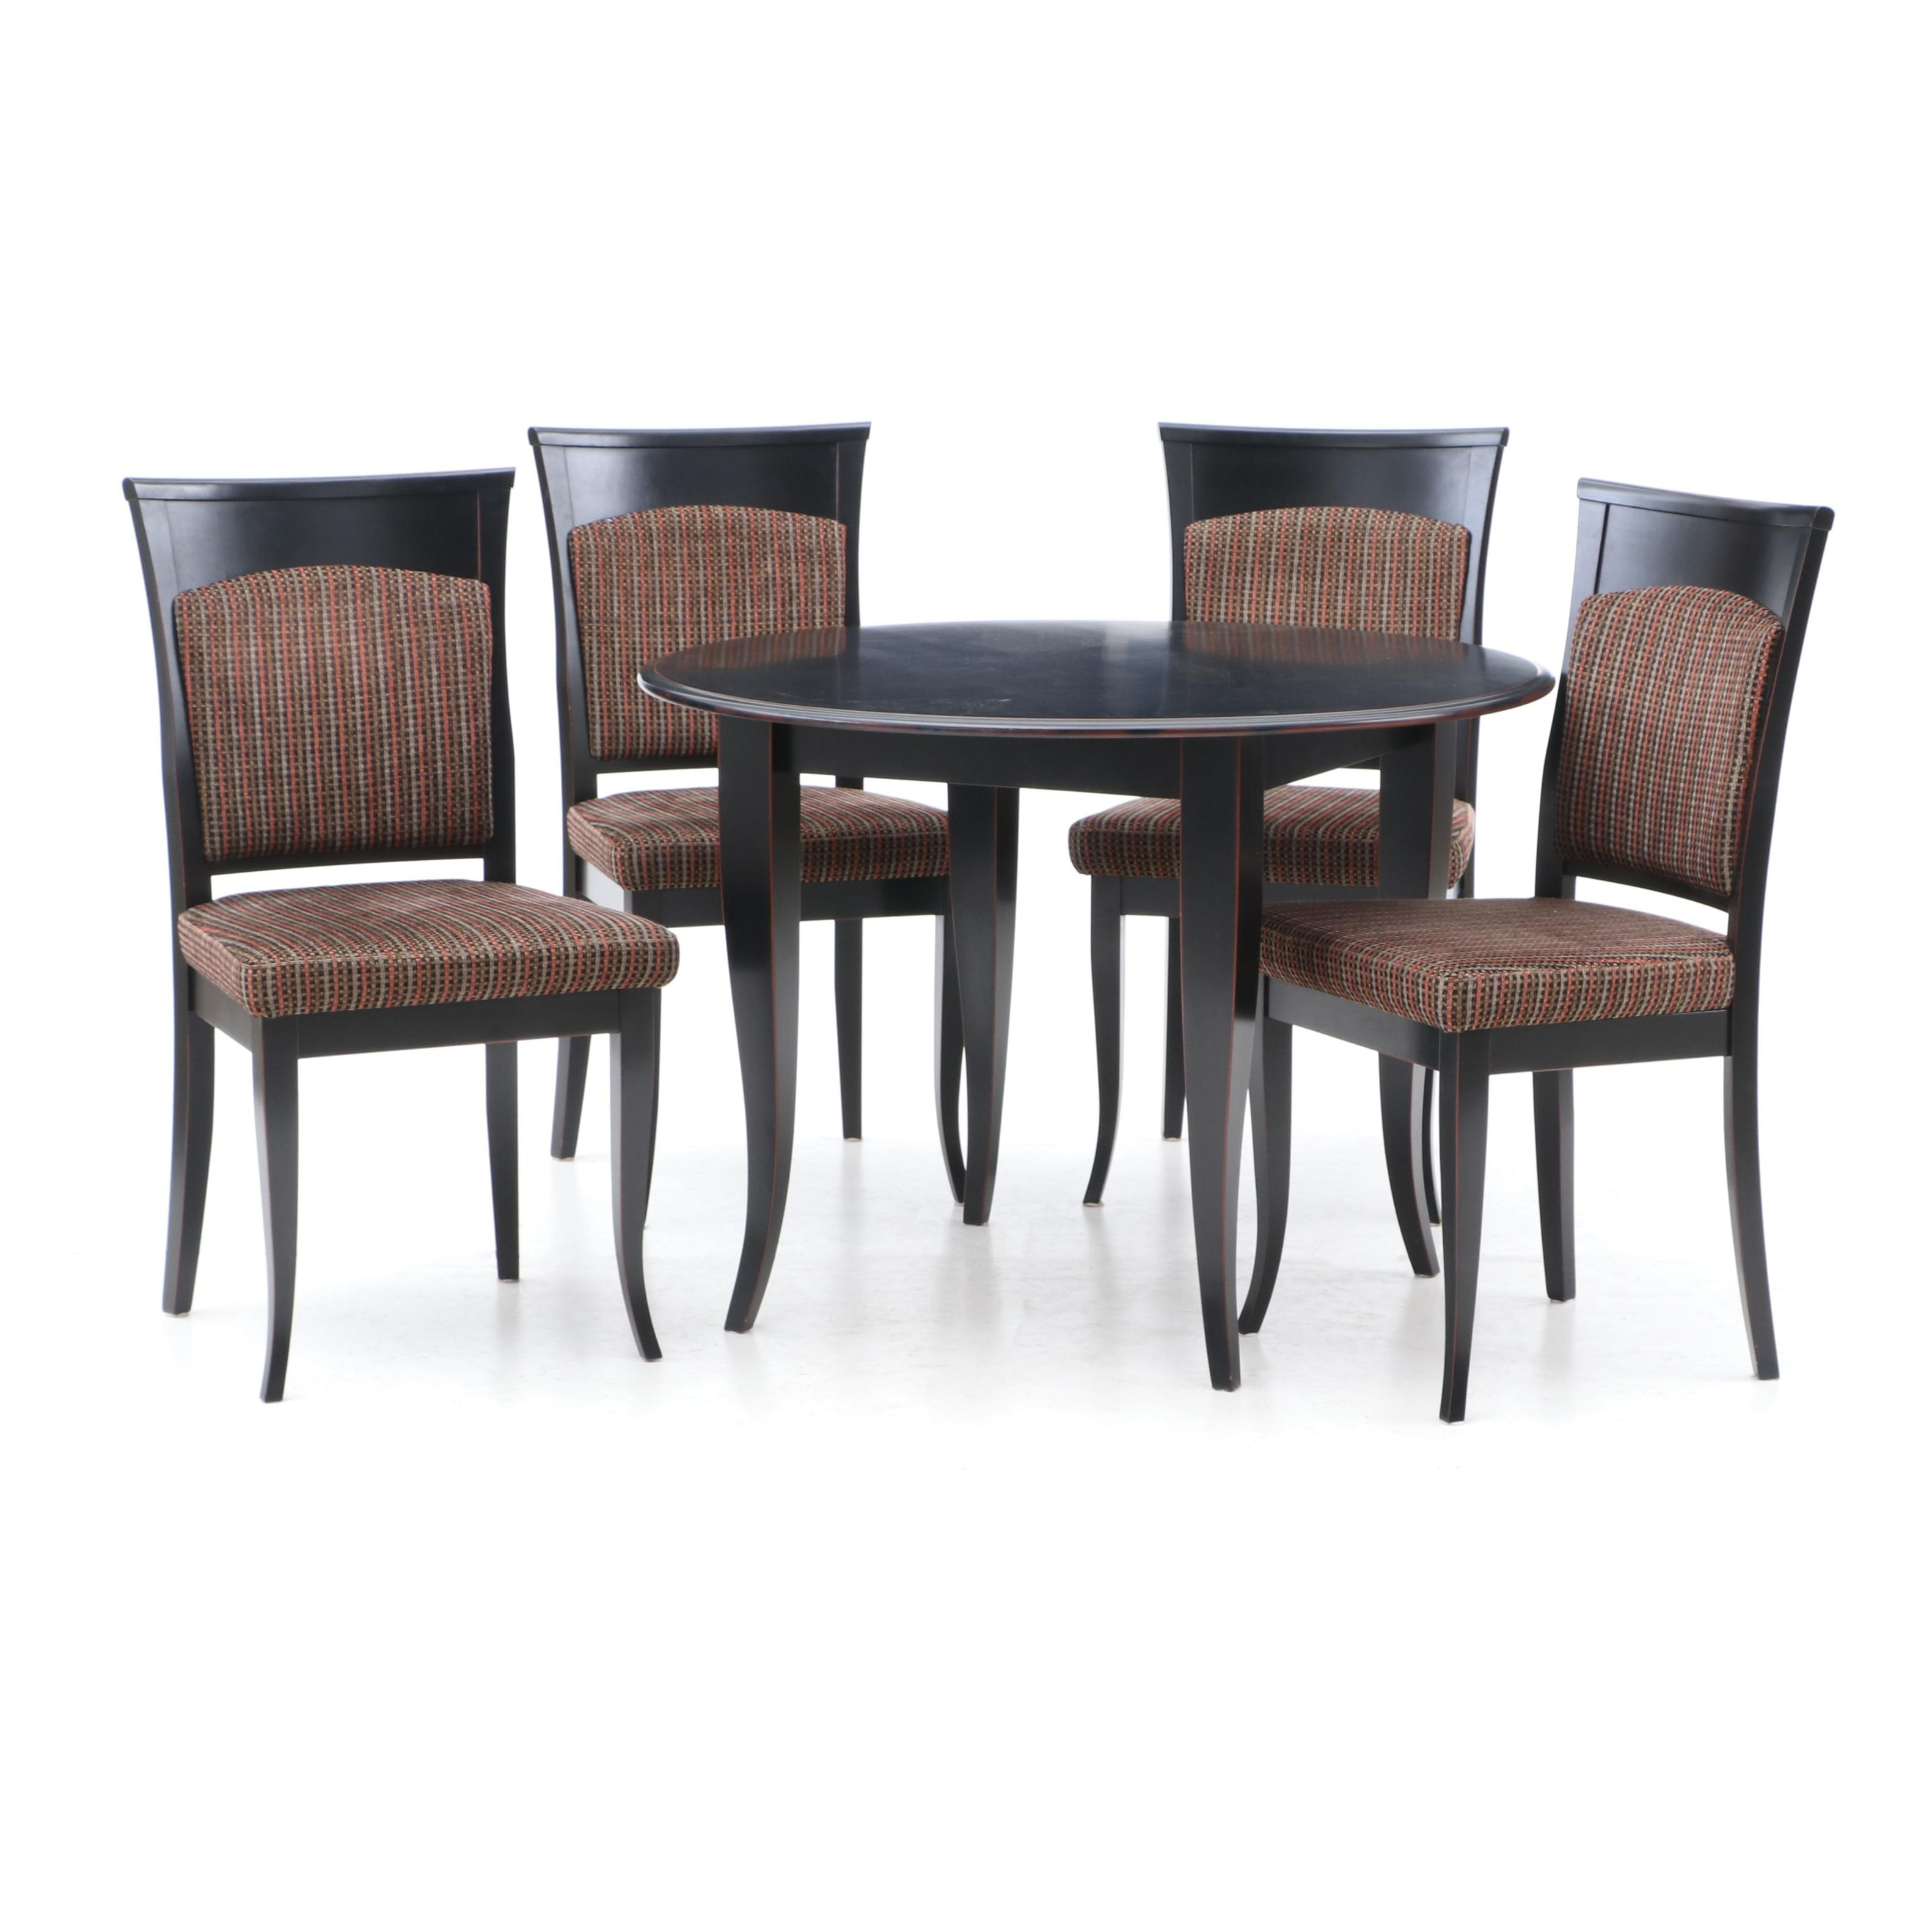 Contemporary Painted Wood Dining Table with Side Chairs by Dinec